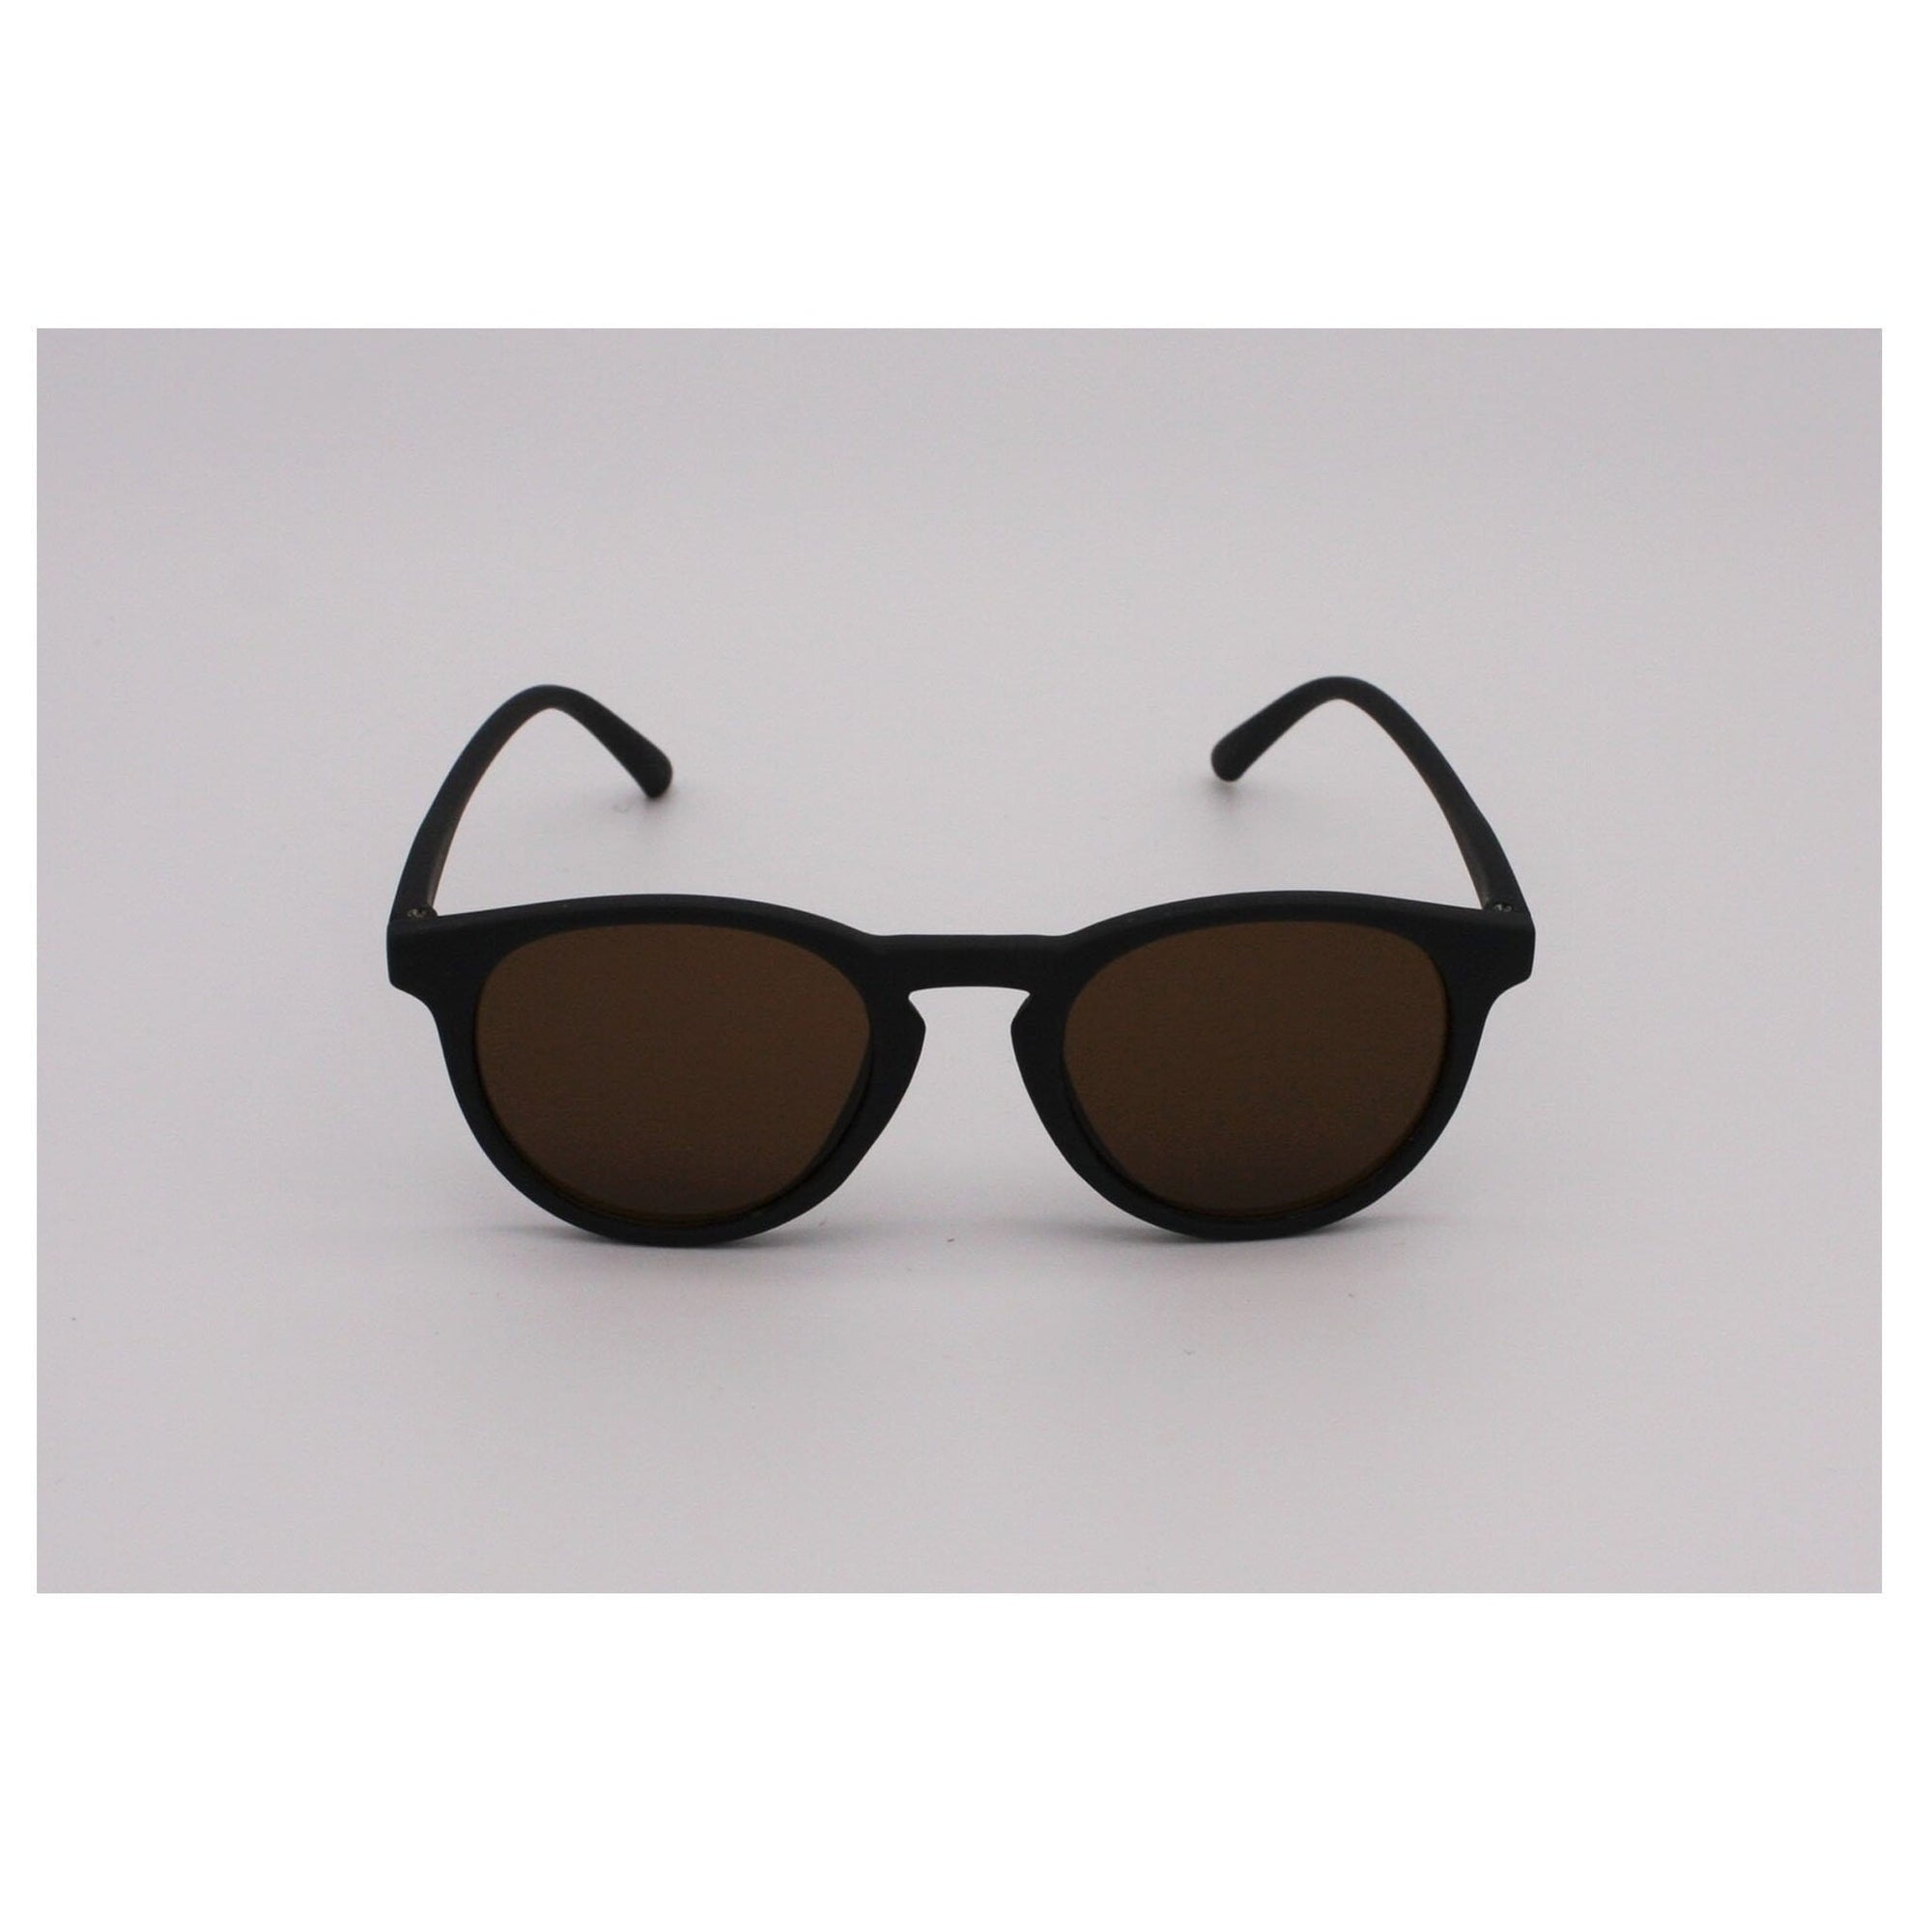 Elle Porte Children's Sunglasses - Slate